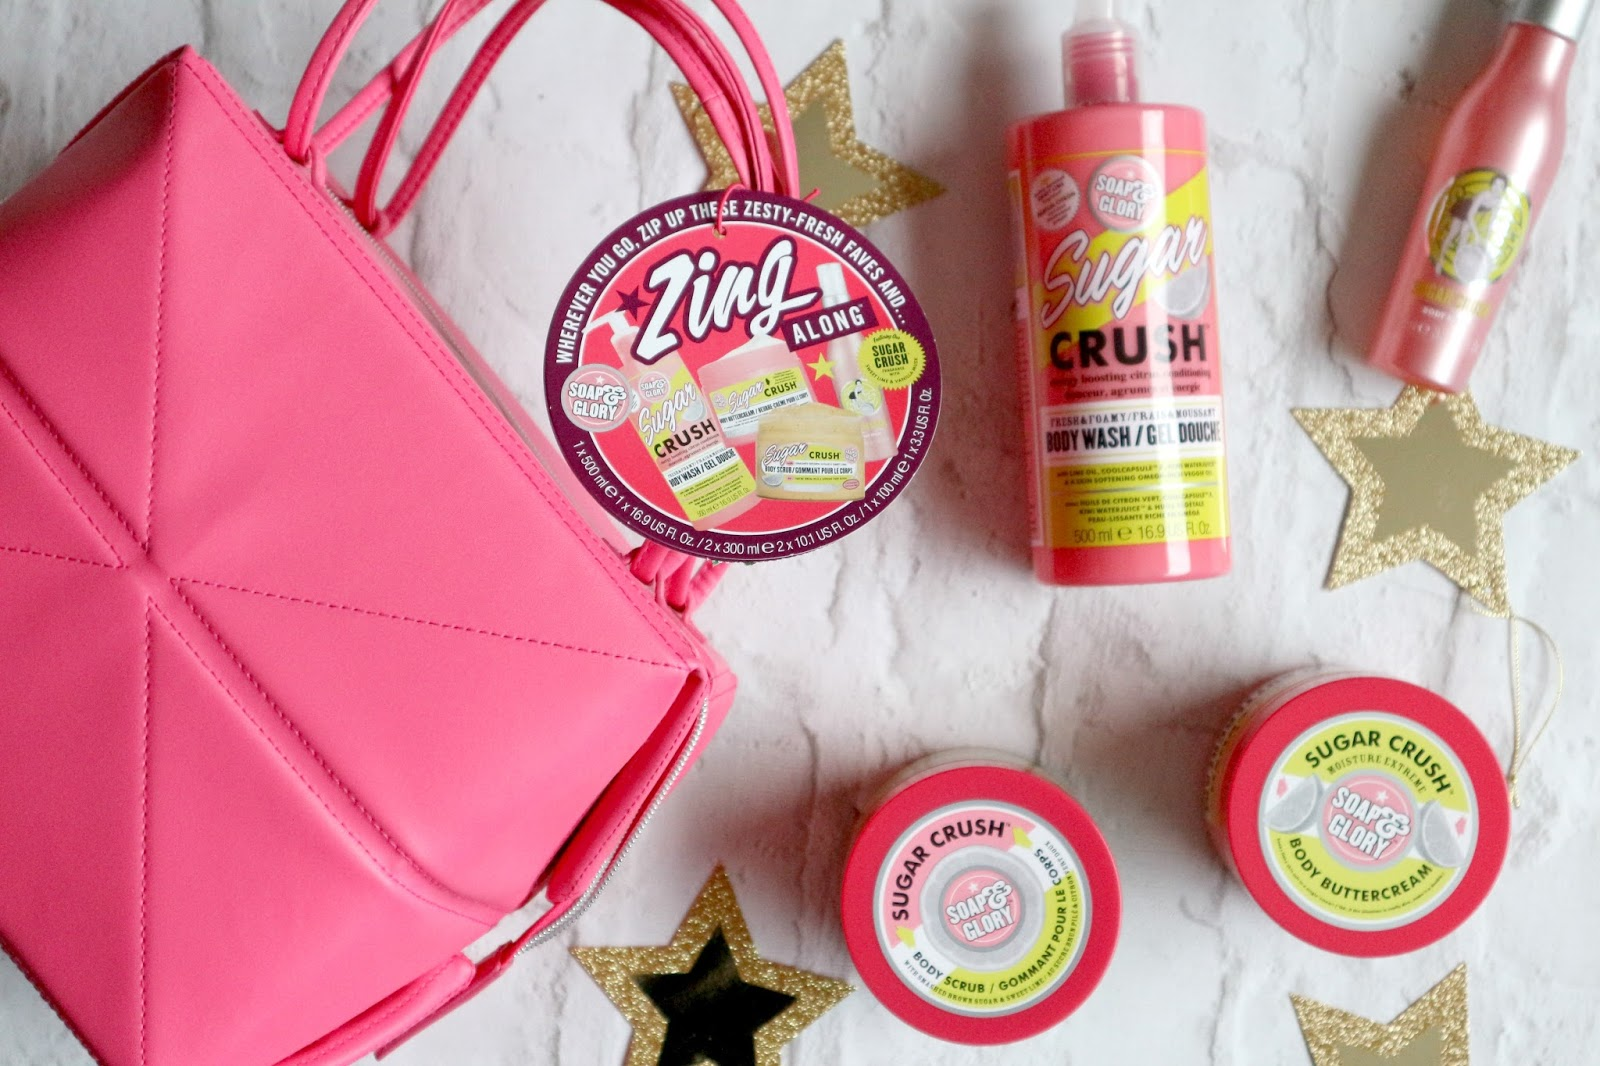 Soap & Glory Christmas gift sets review